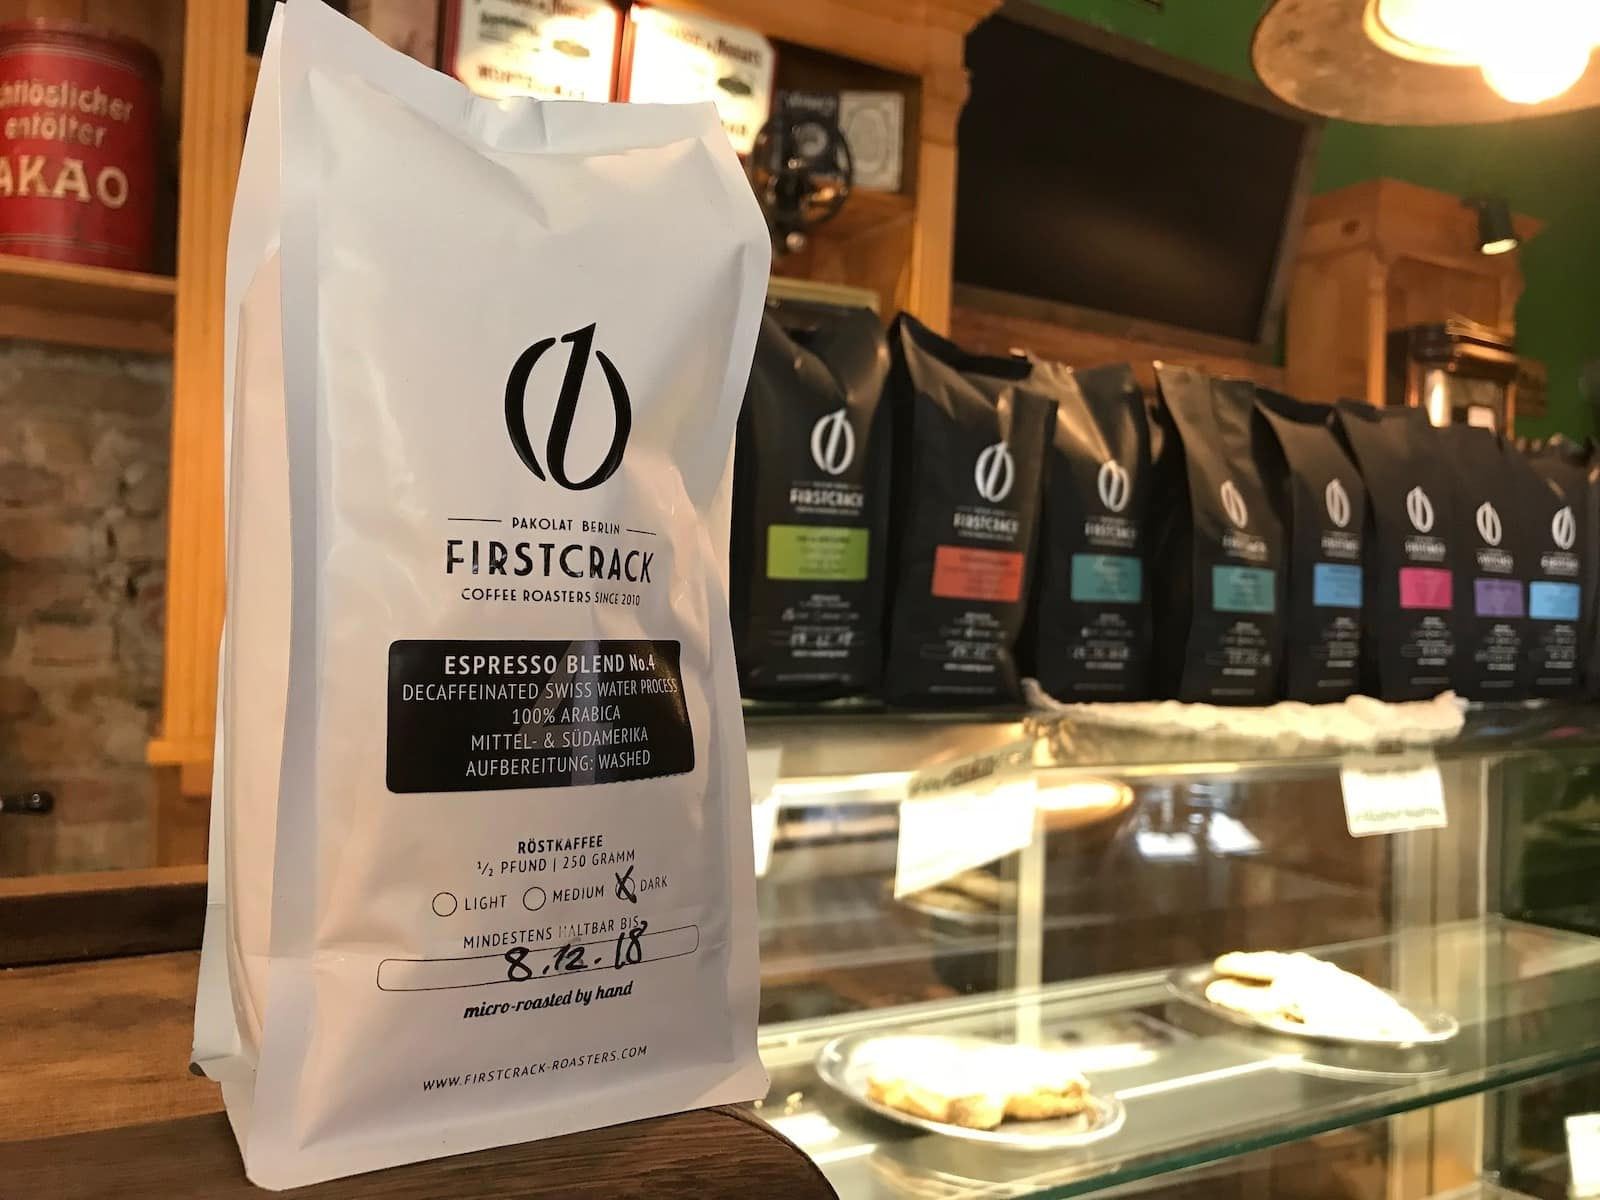 Verpackungsdesign Berlin - Firstcrack Coffee Roasters